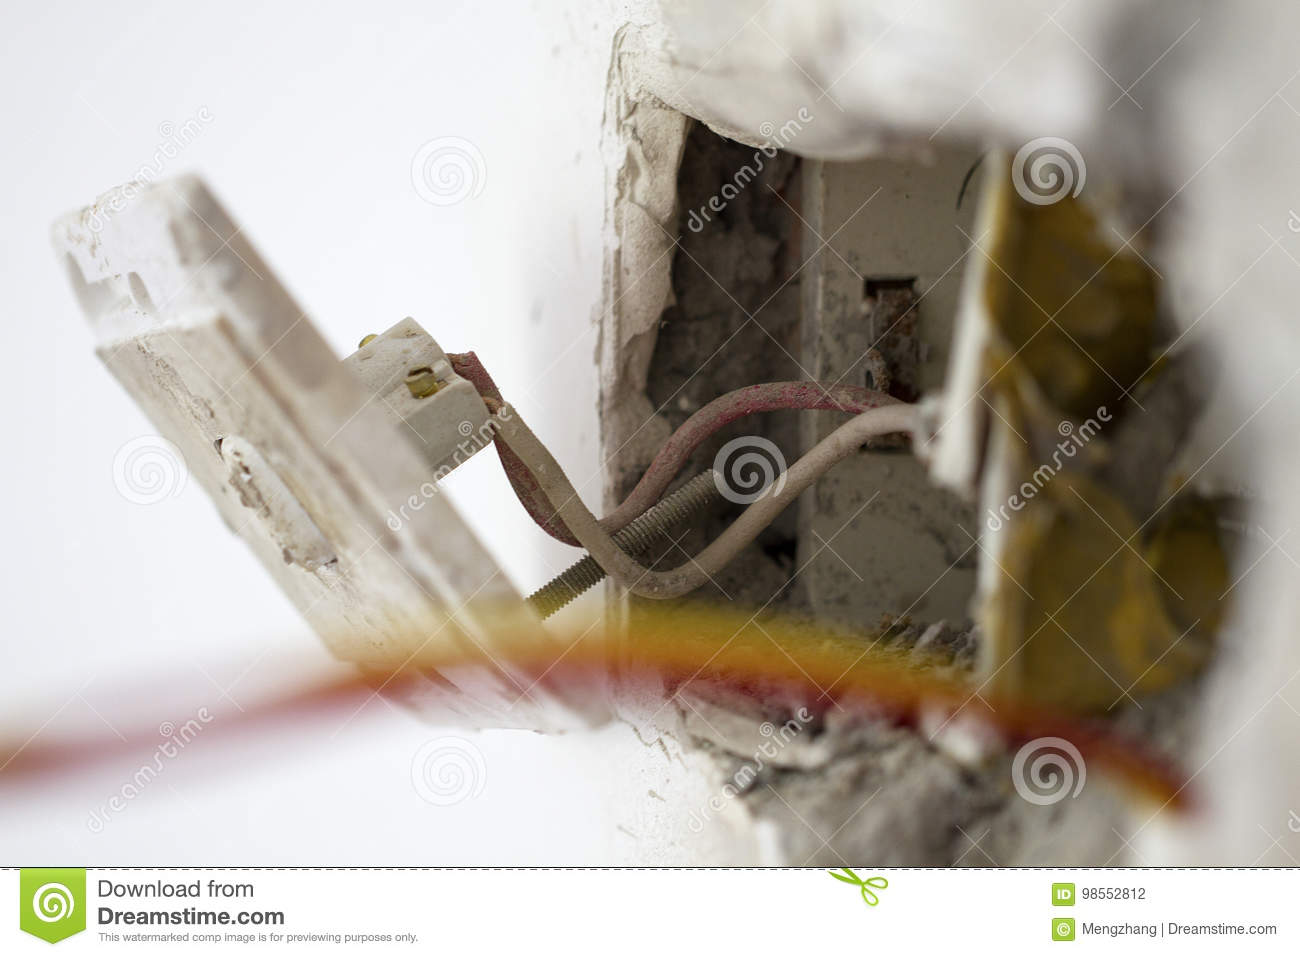 Electrical Renovation Work Light Switch Stock Photo Image Of Wiring Wall Box Cable Electricelectrical With During Residential Renovationa Hanging Off The